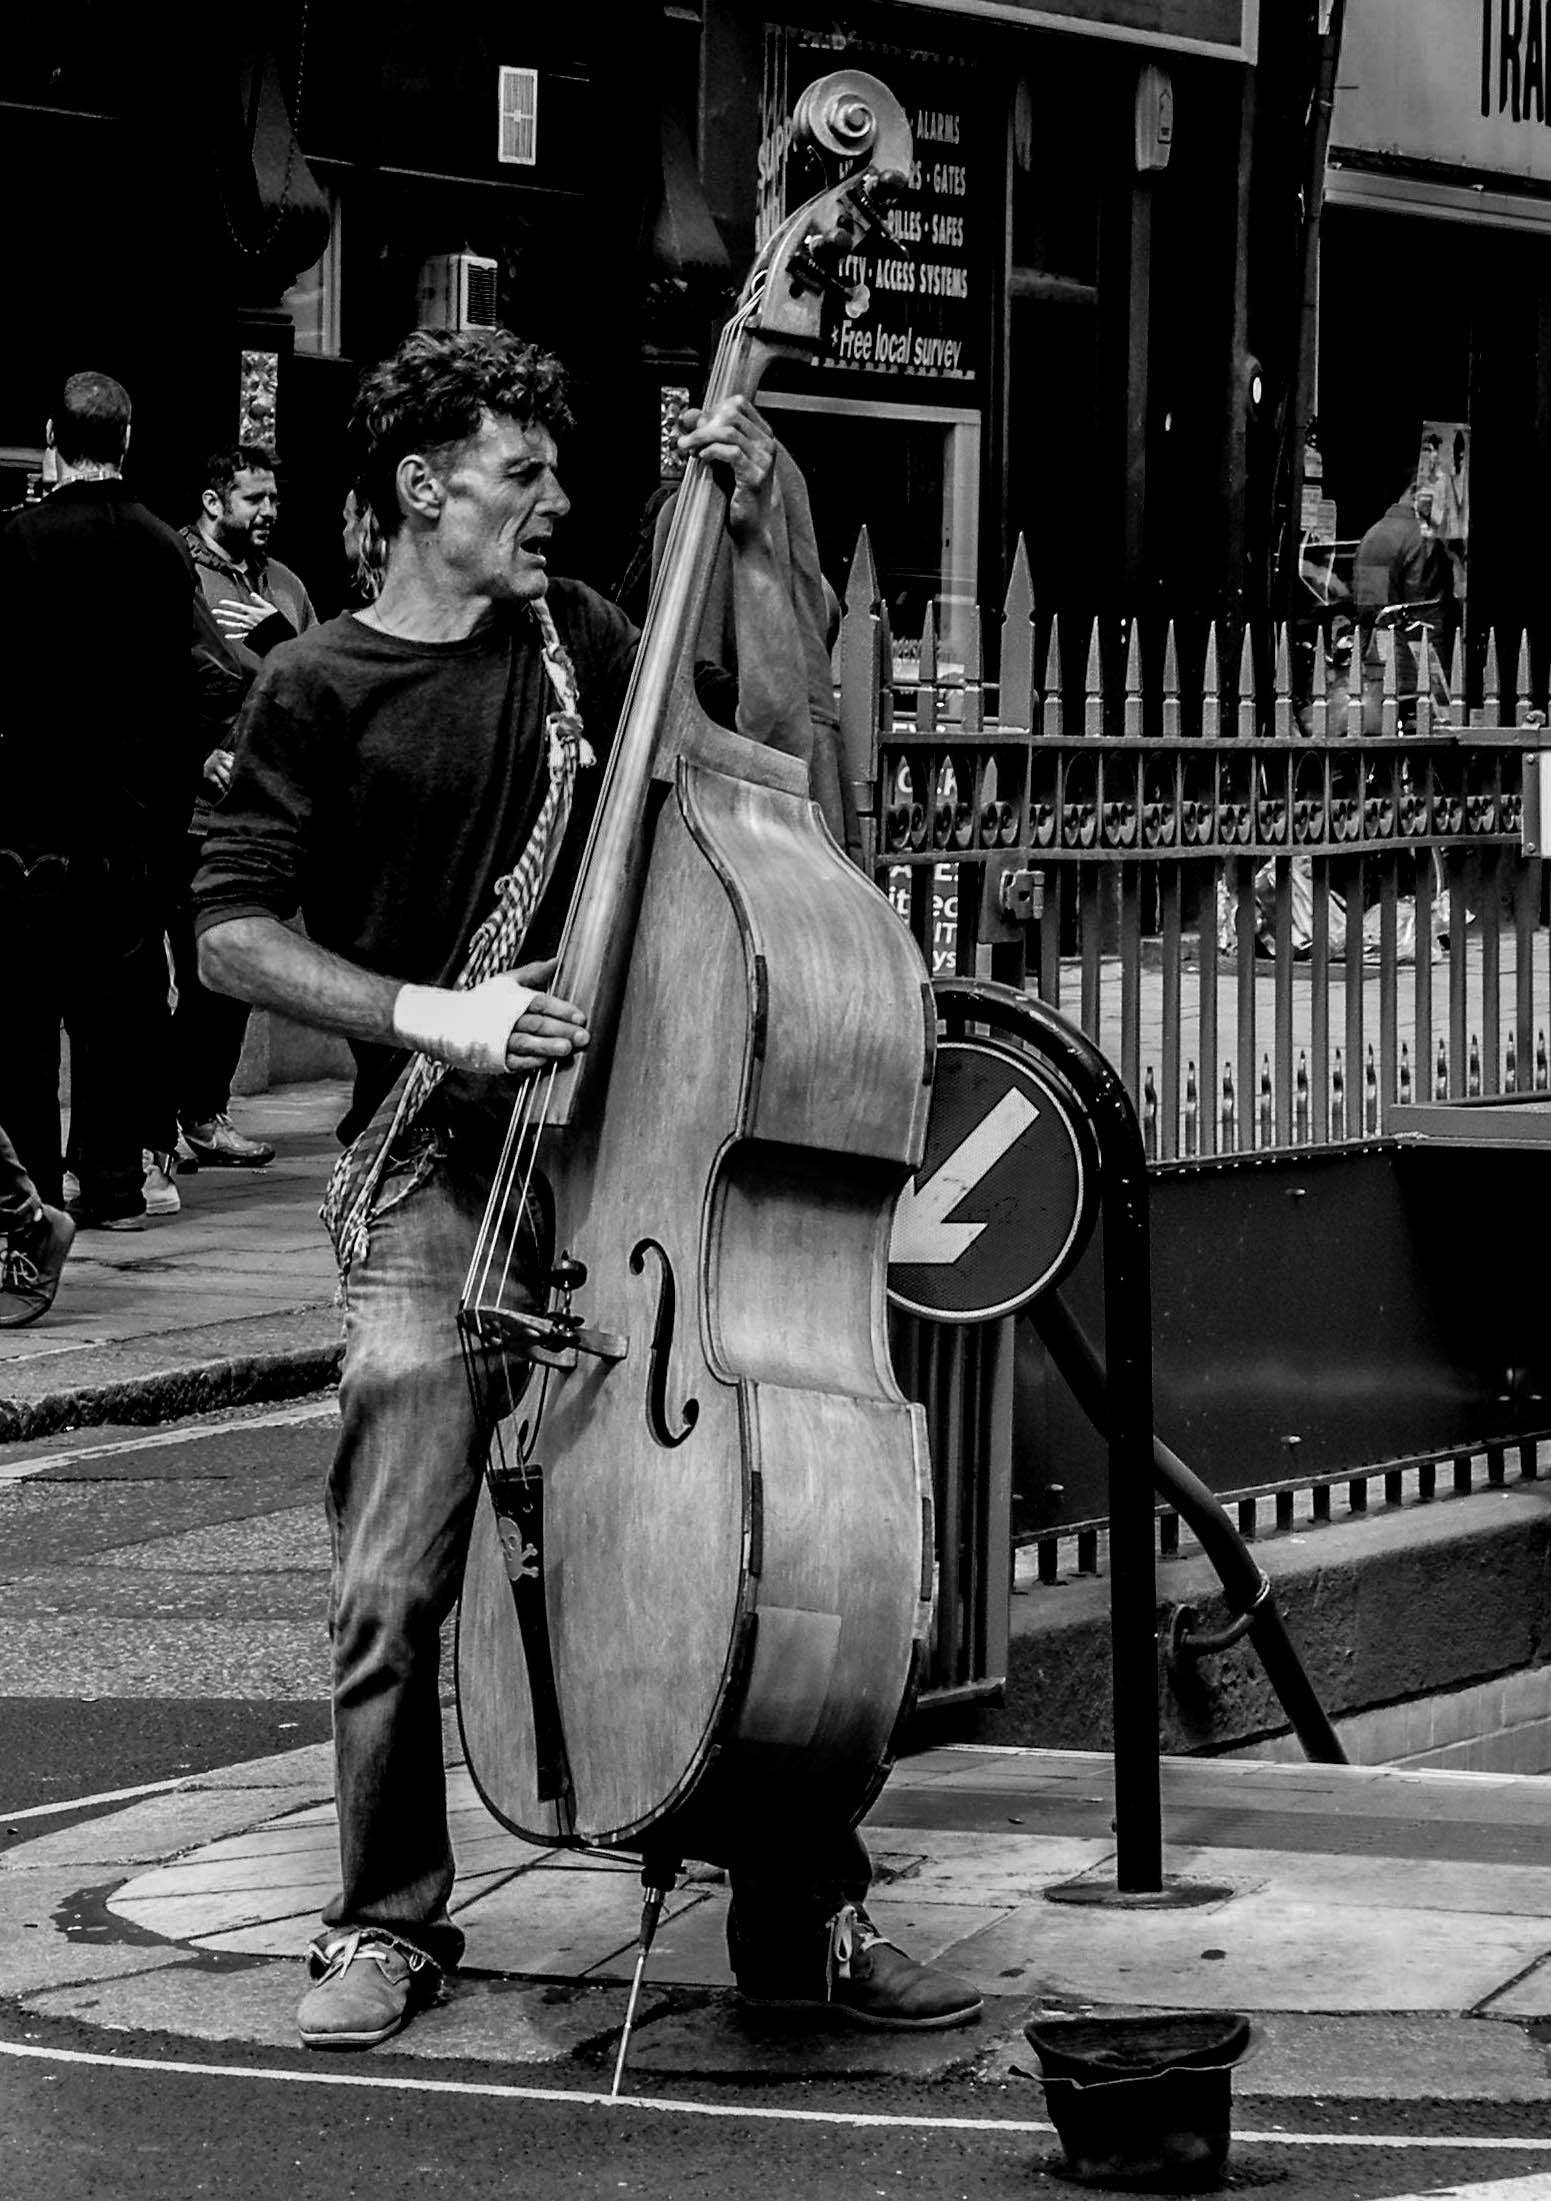 Grayscale Photography of Man Playing Cello